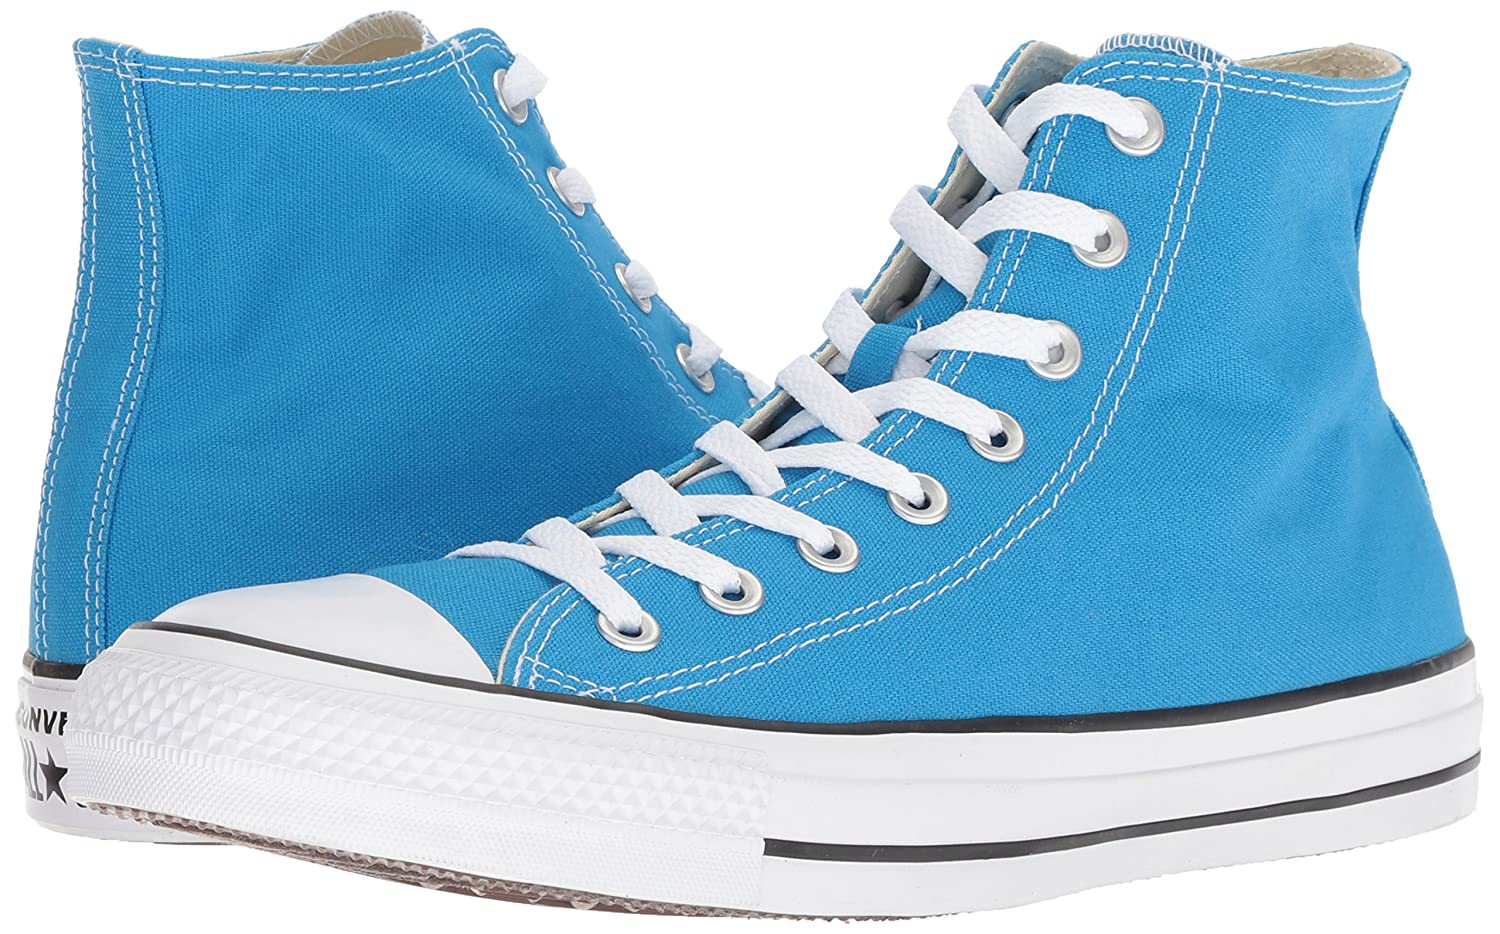 Converse Chuck Taylor All Star 2018 Seasonal 9 High Top Sneaker B078NHQ357 9 Seasonal M US|Blue Hero 777ef6